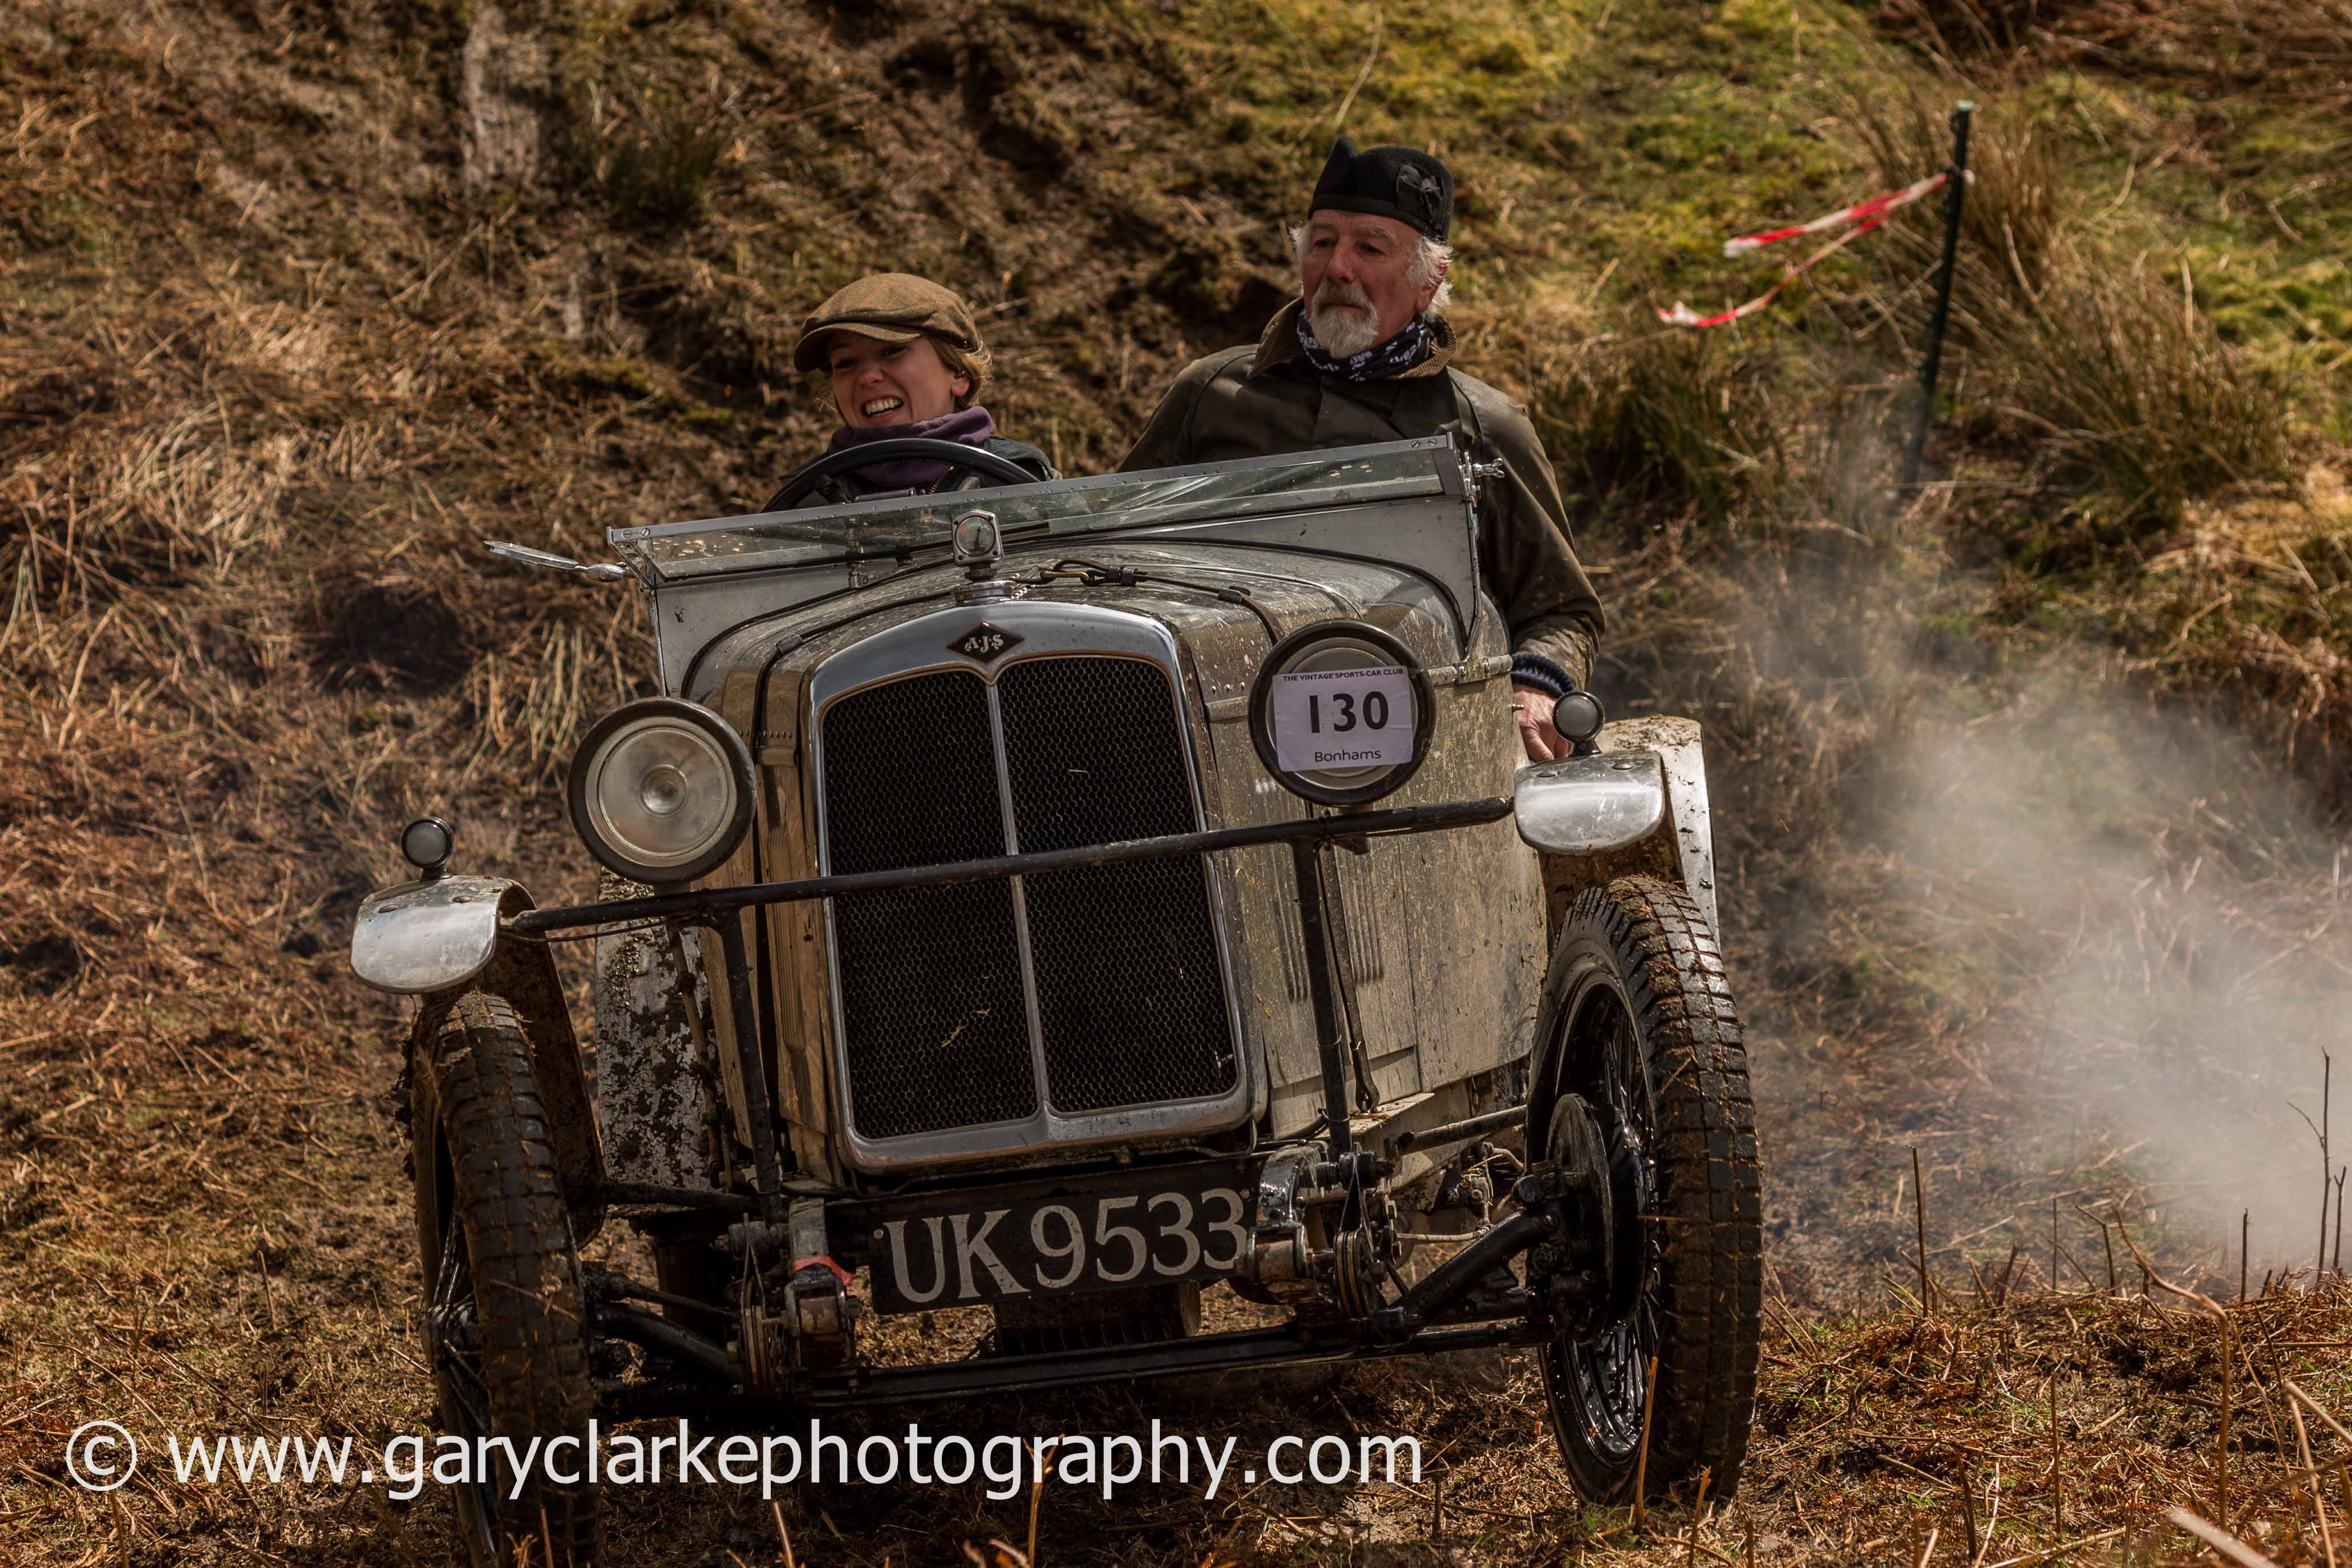 Scottish Borders to host annual VSCC Trial this weekend cover